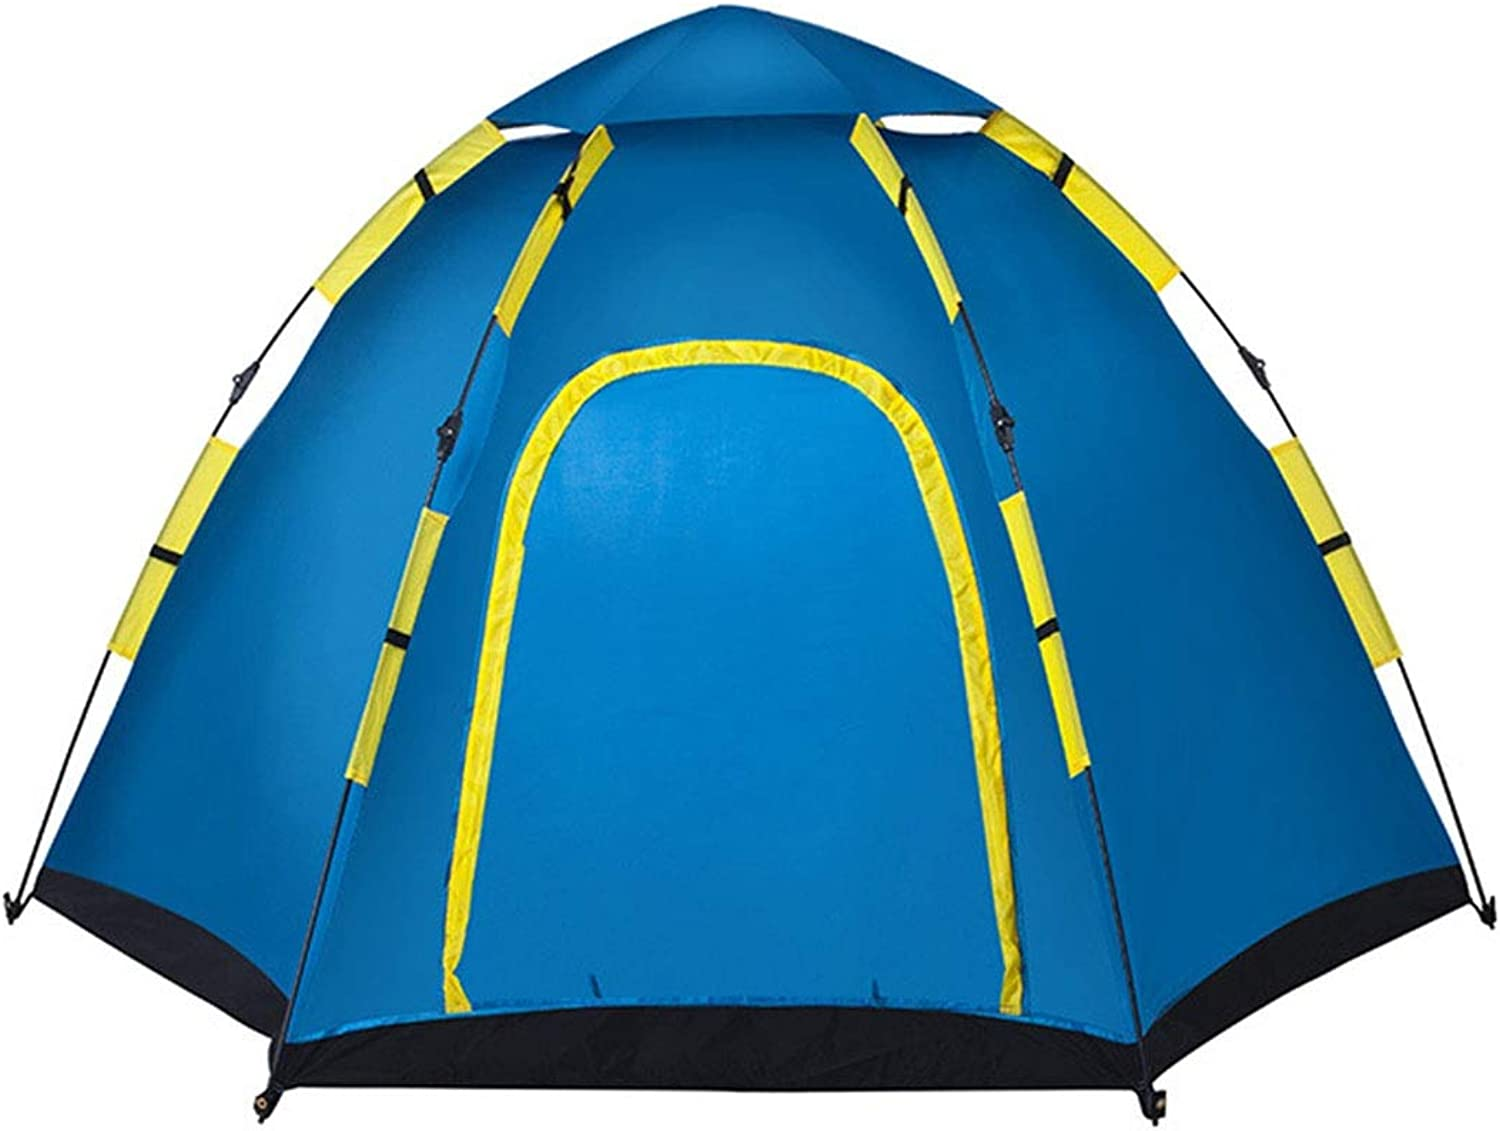 Portable Outdoor Waterproof Folding Tent, 5-8 Large Telescopic Tent, Camping Hiking Beach Tent